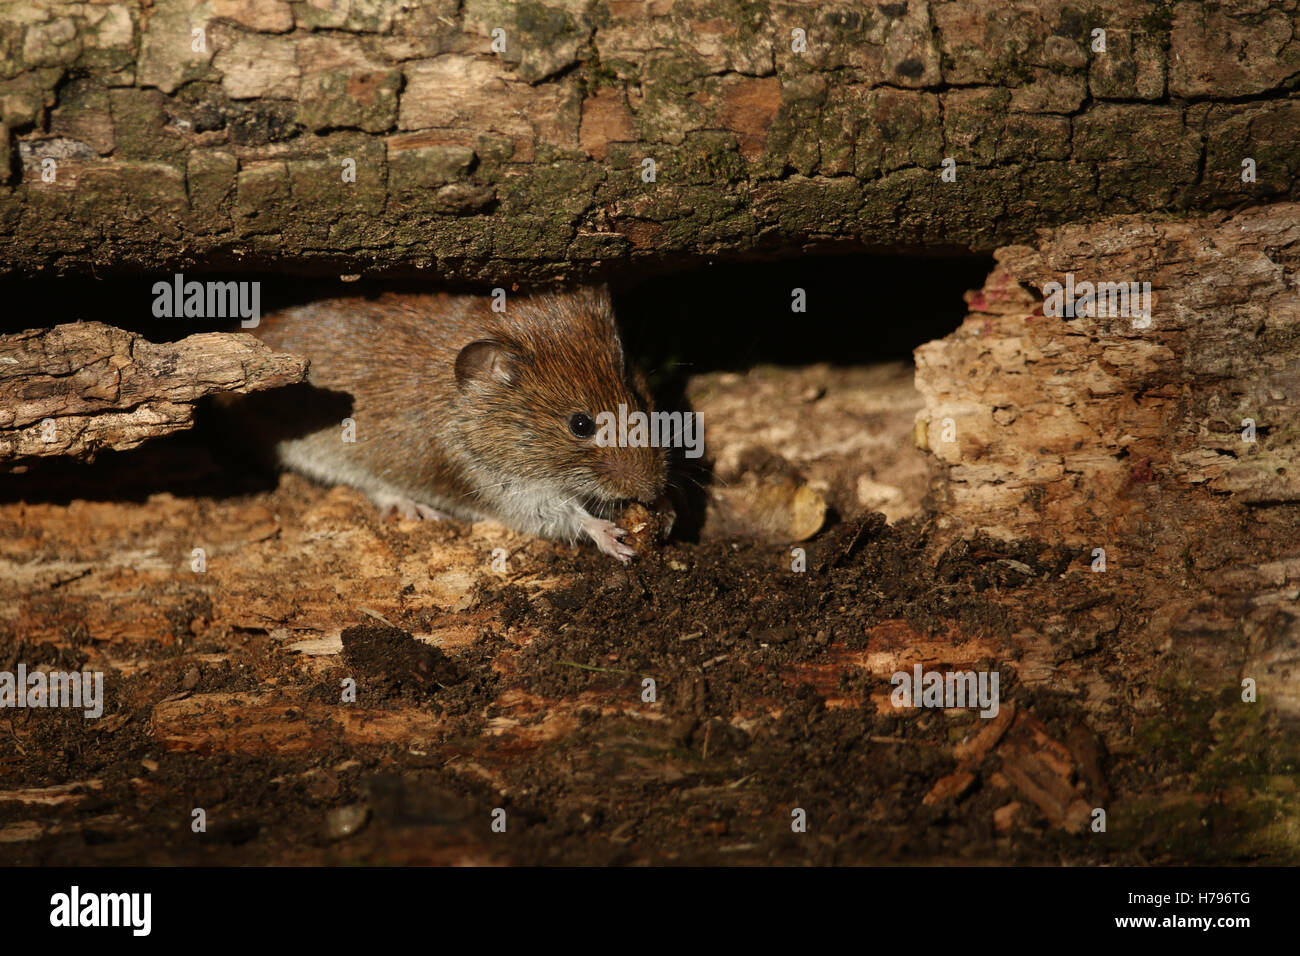 A wild Bank Vole (Myodes glareolus) eating in a wood pile. - Stock Image